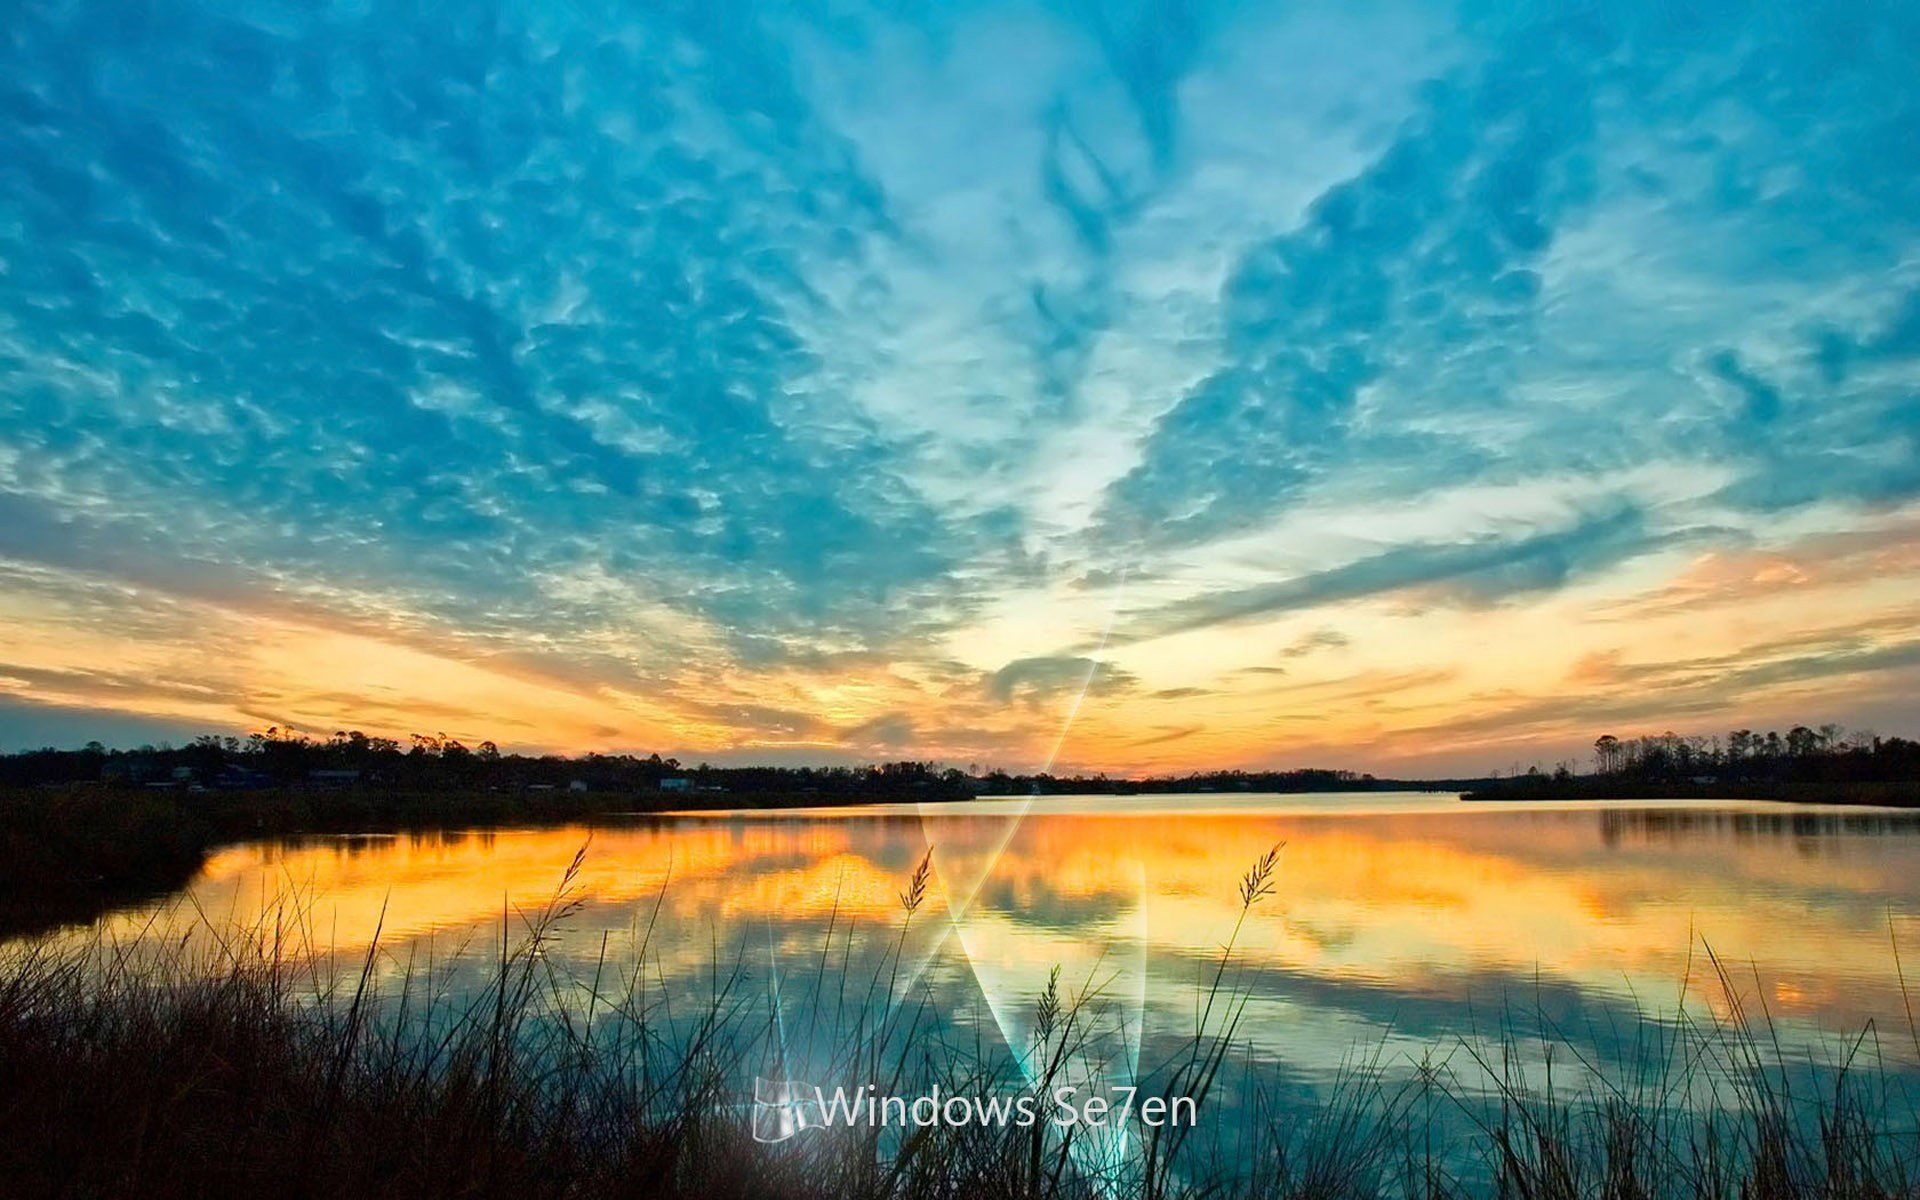 landscapes nature Windows 7 Microsoft skyscapes